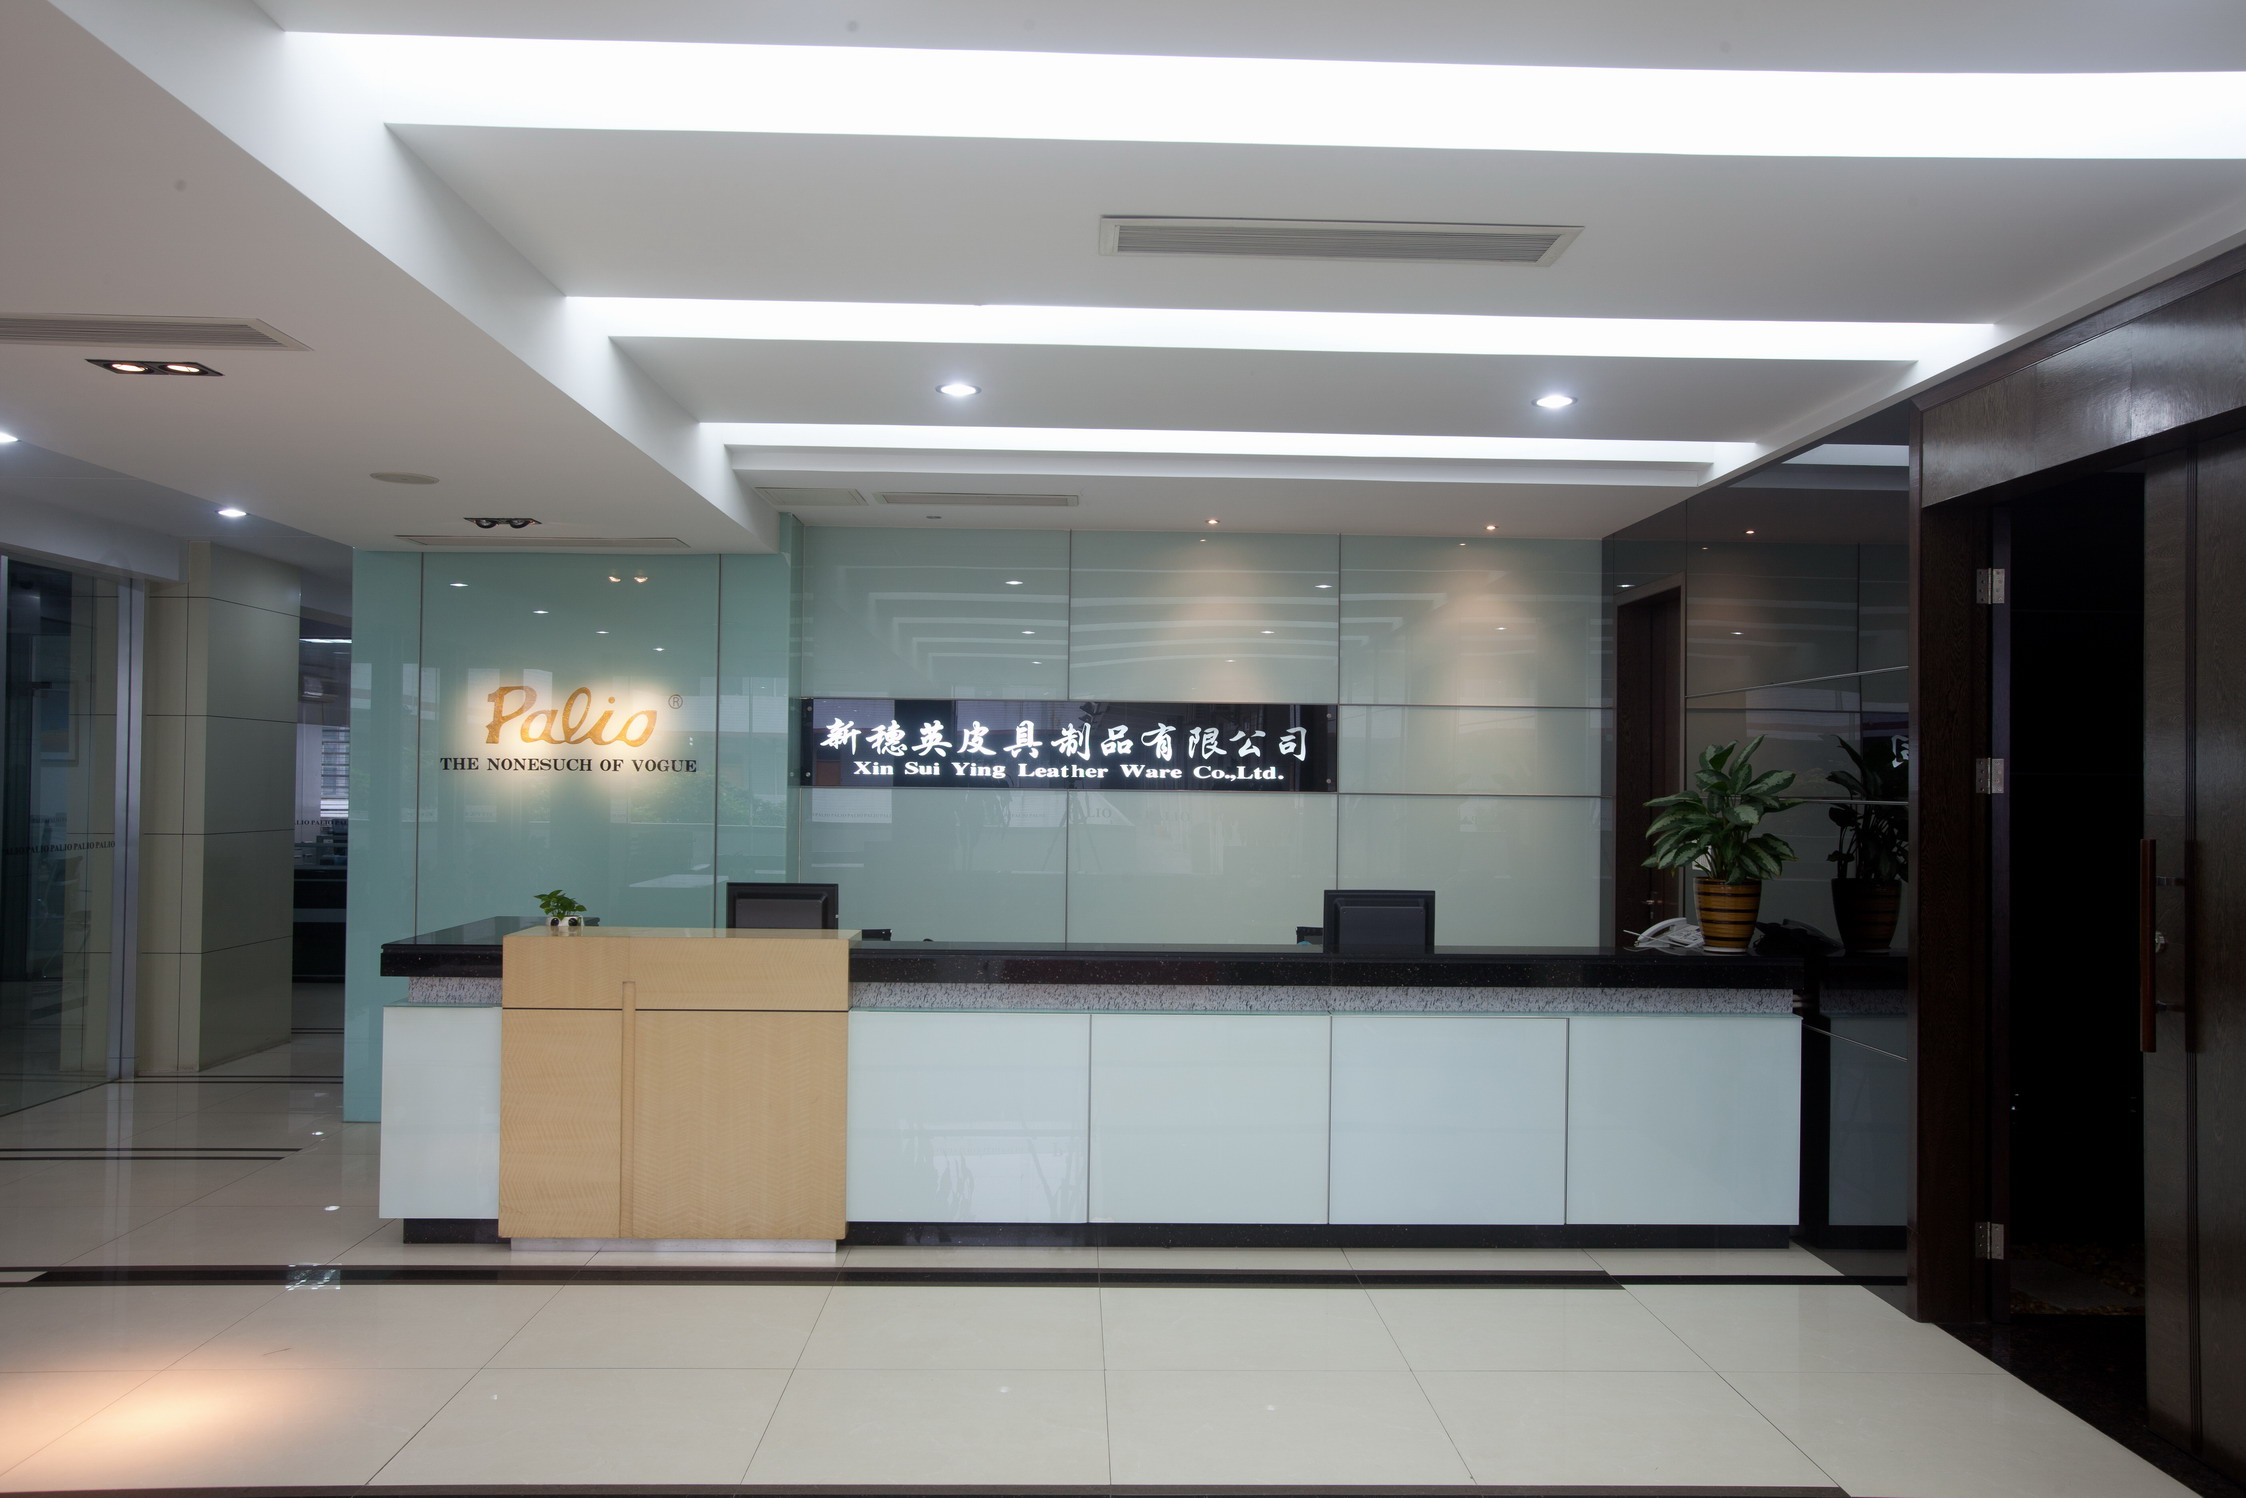 KAIPING XIN SUI YING LEATHER WARE CO.,LTD